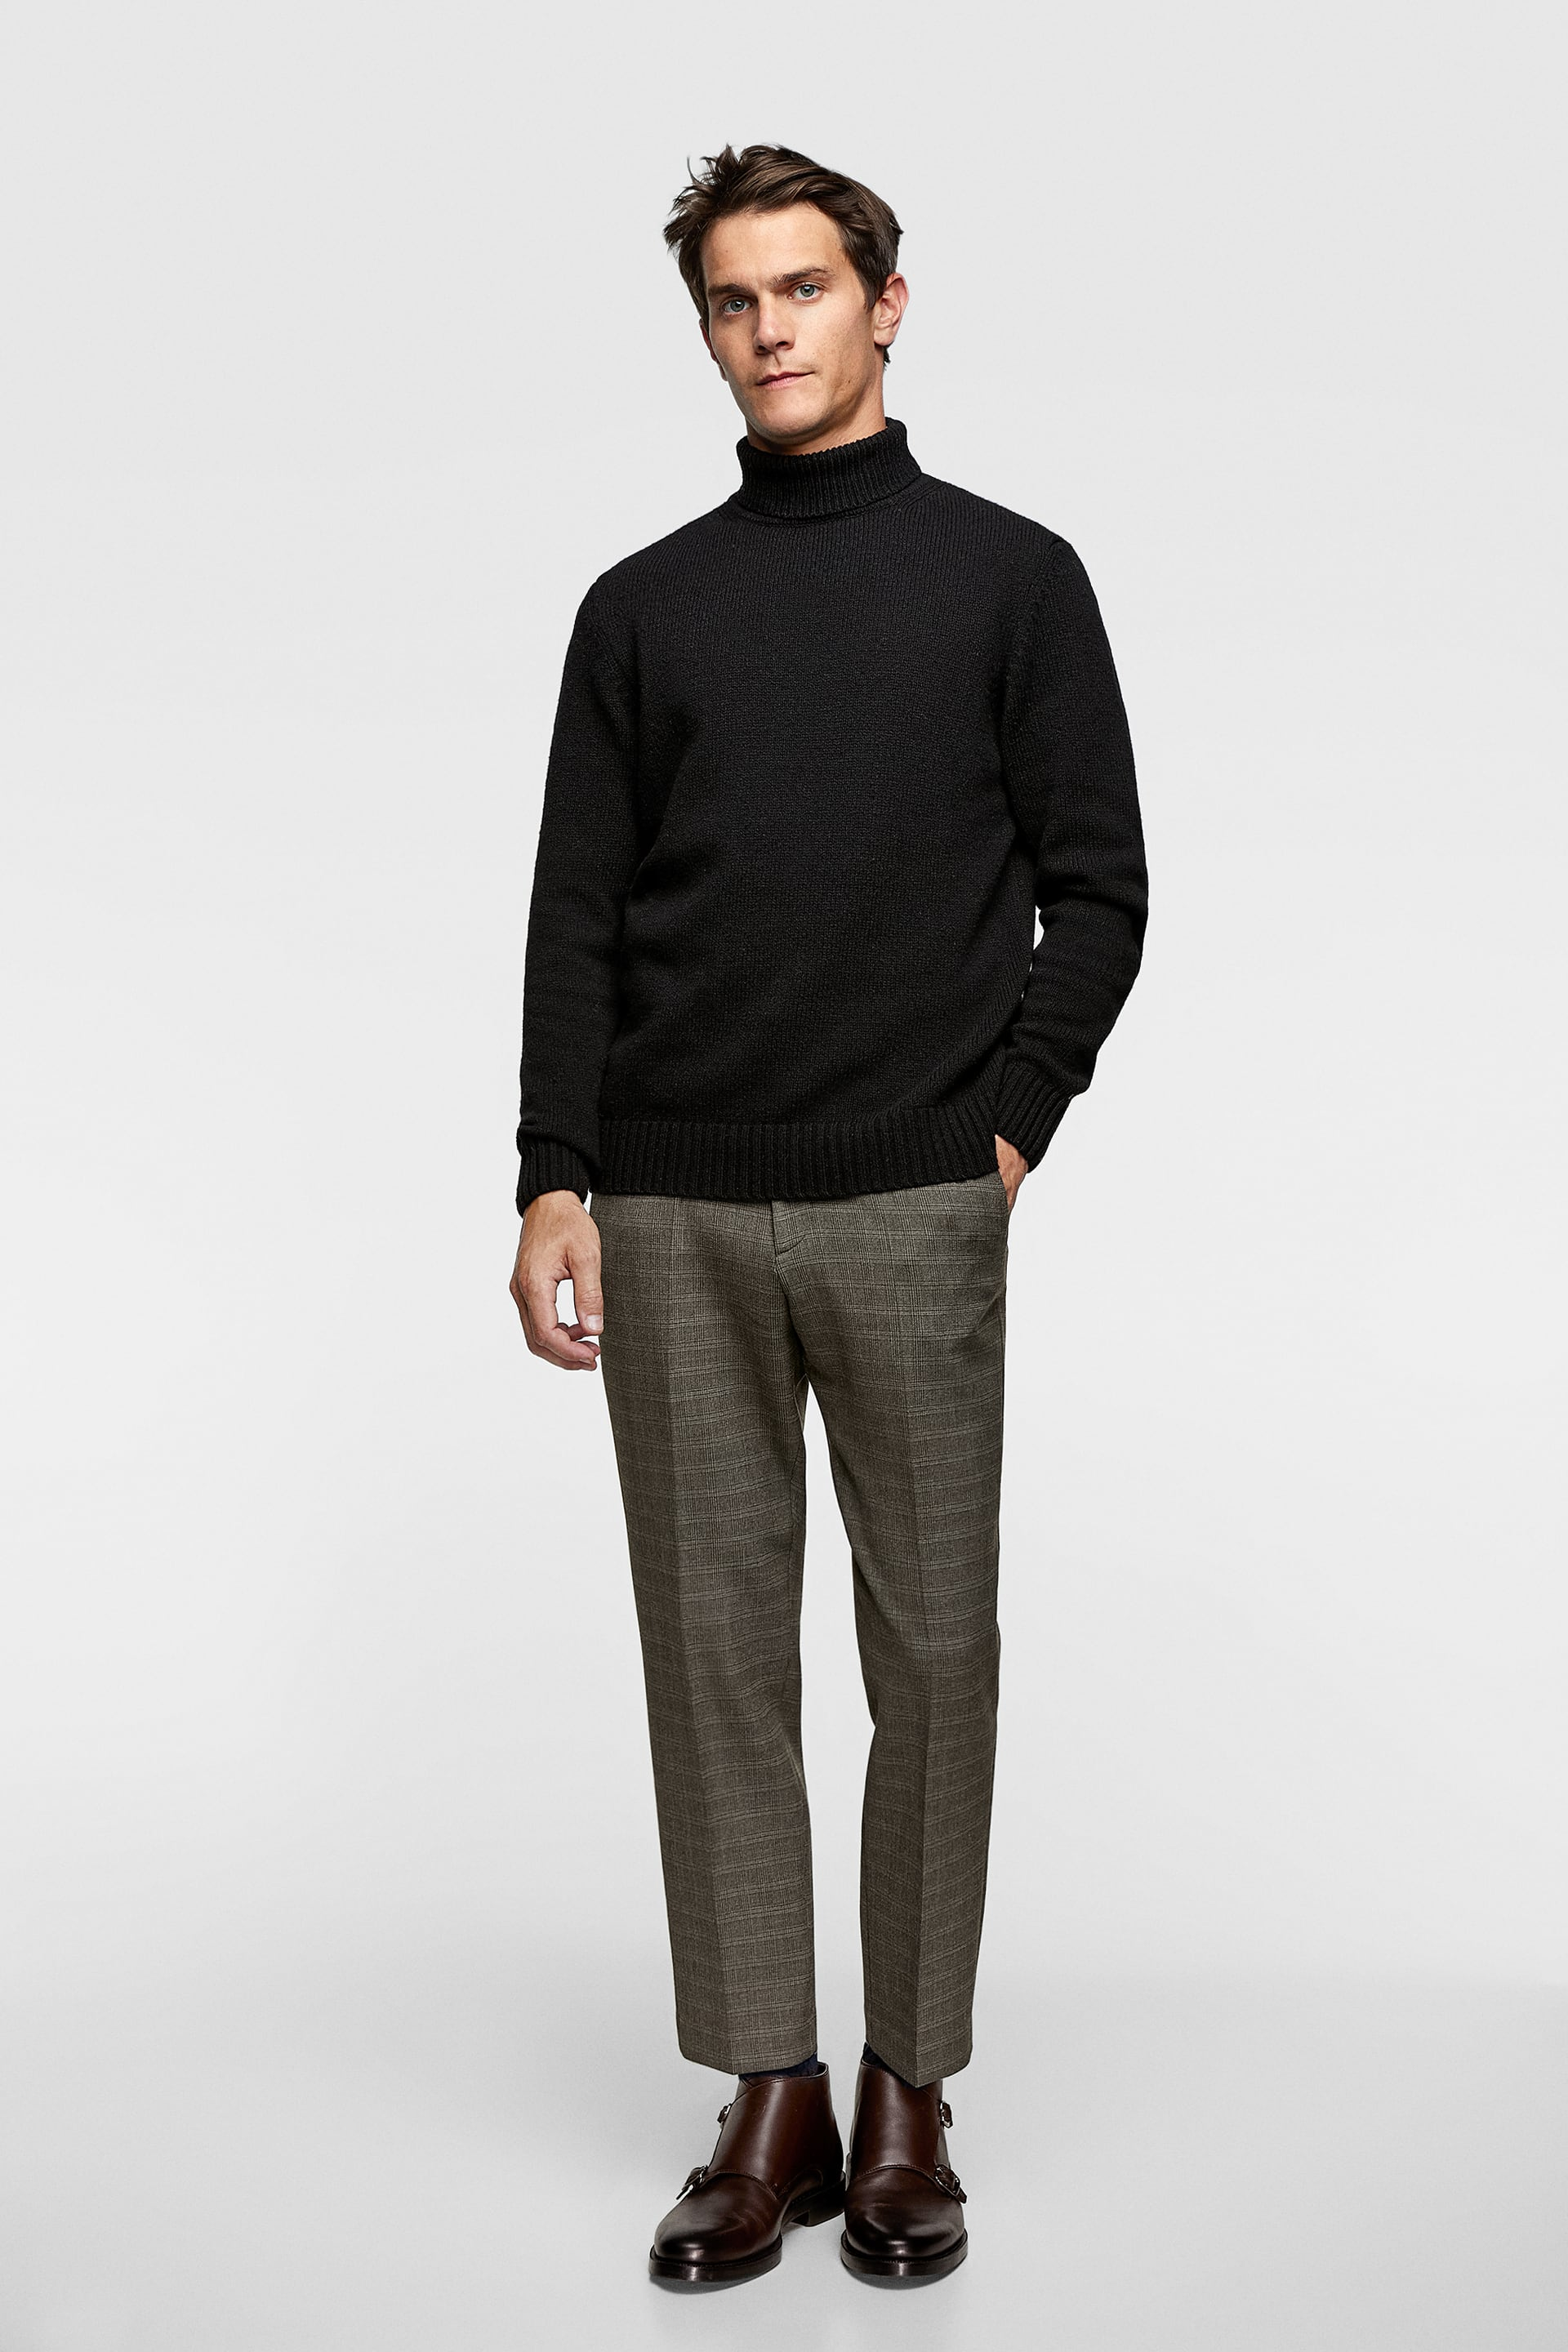 Pantalon À Carreaux  Casual Pantalons Homme by Zara